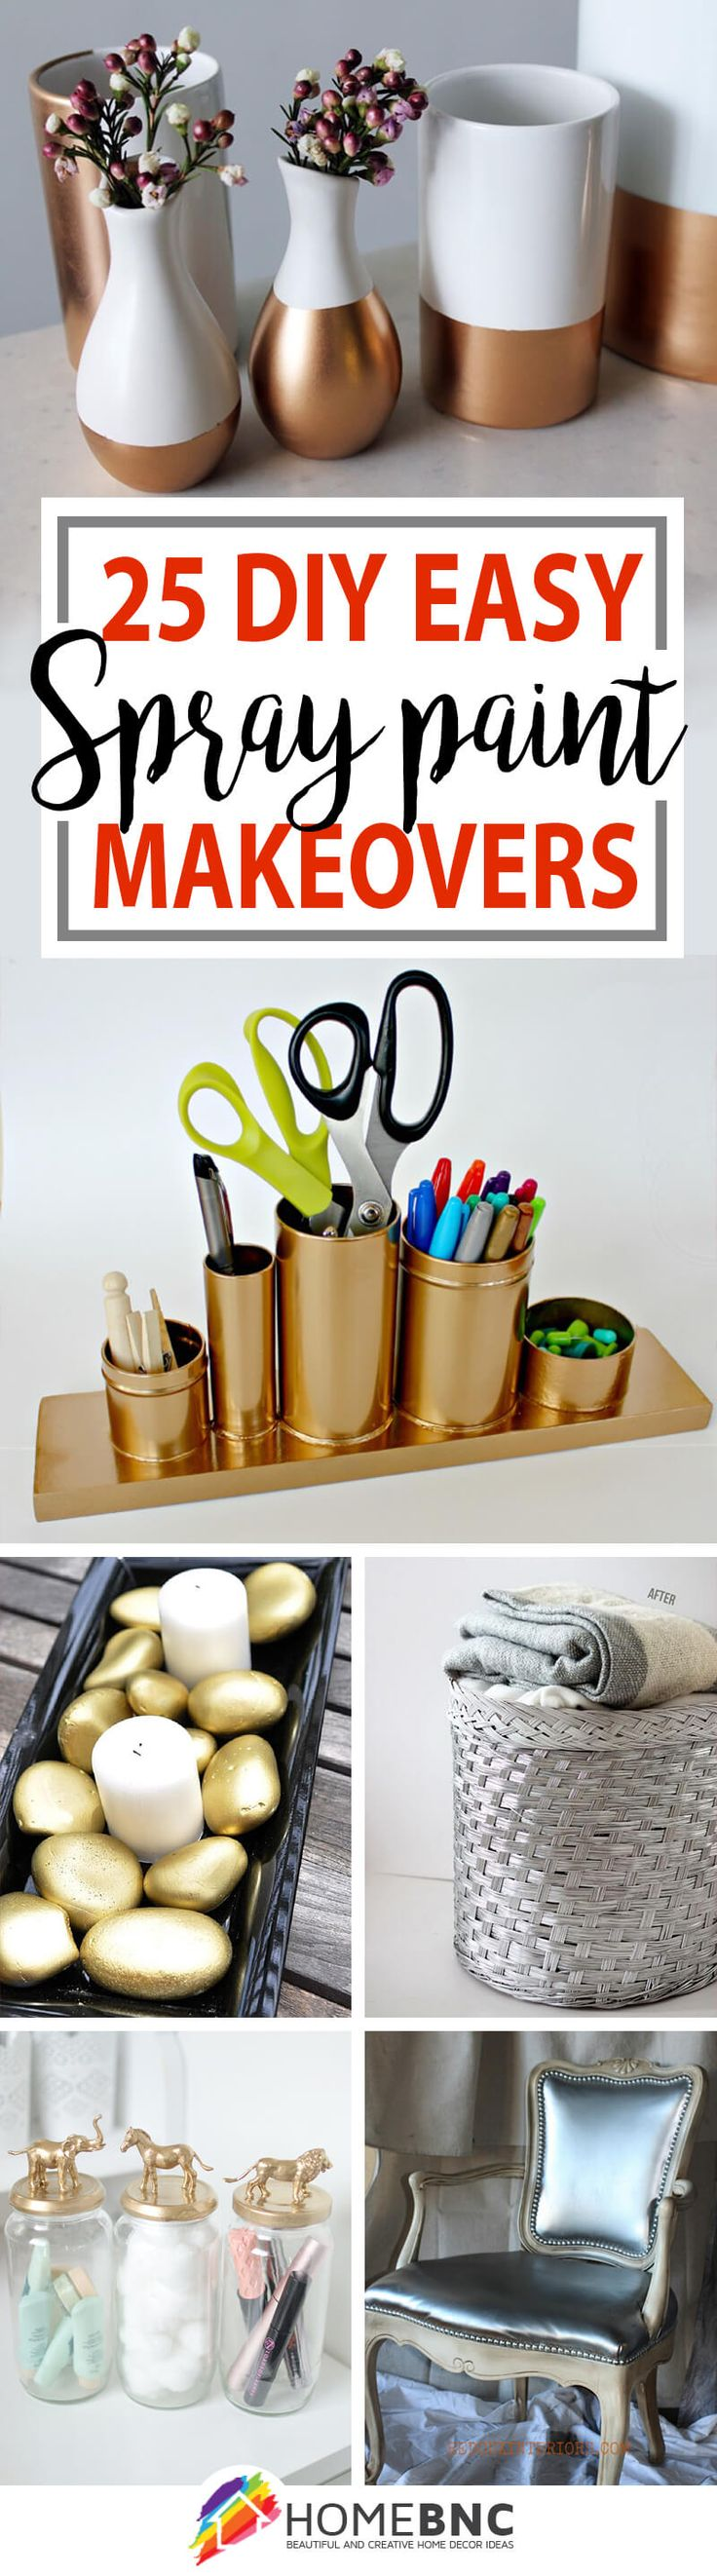 DIY Spray Paint Makeover Ideas